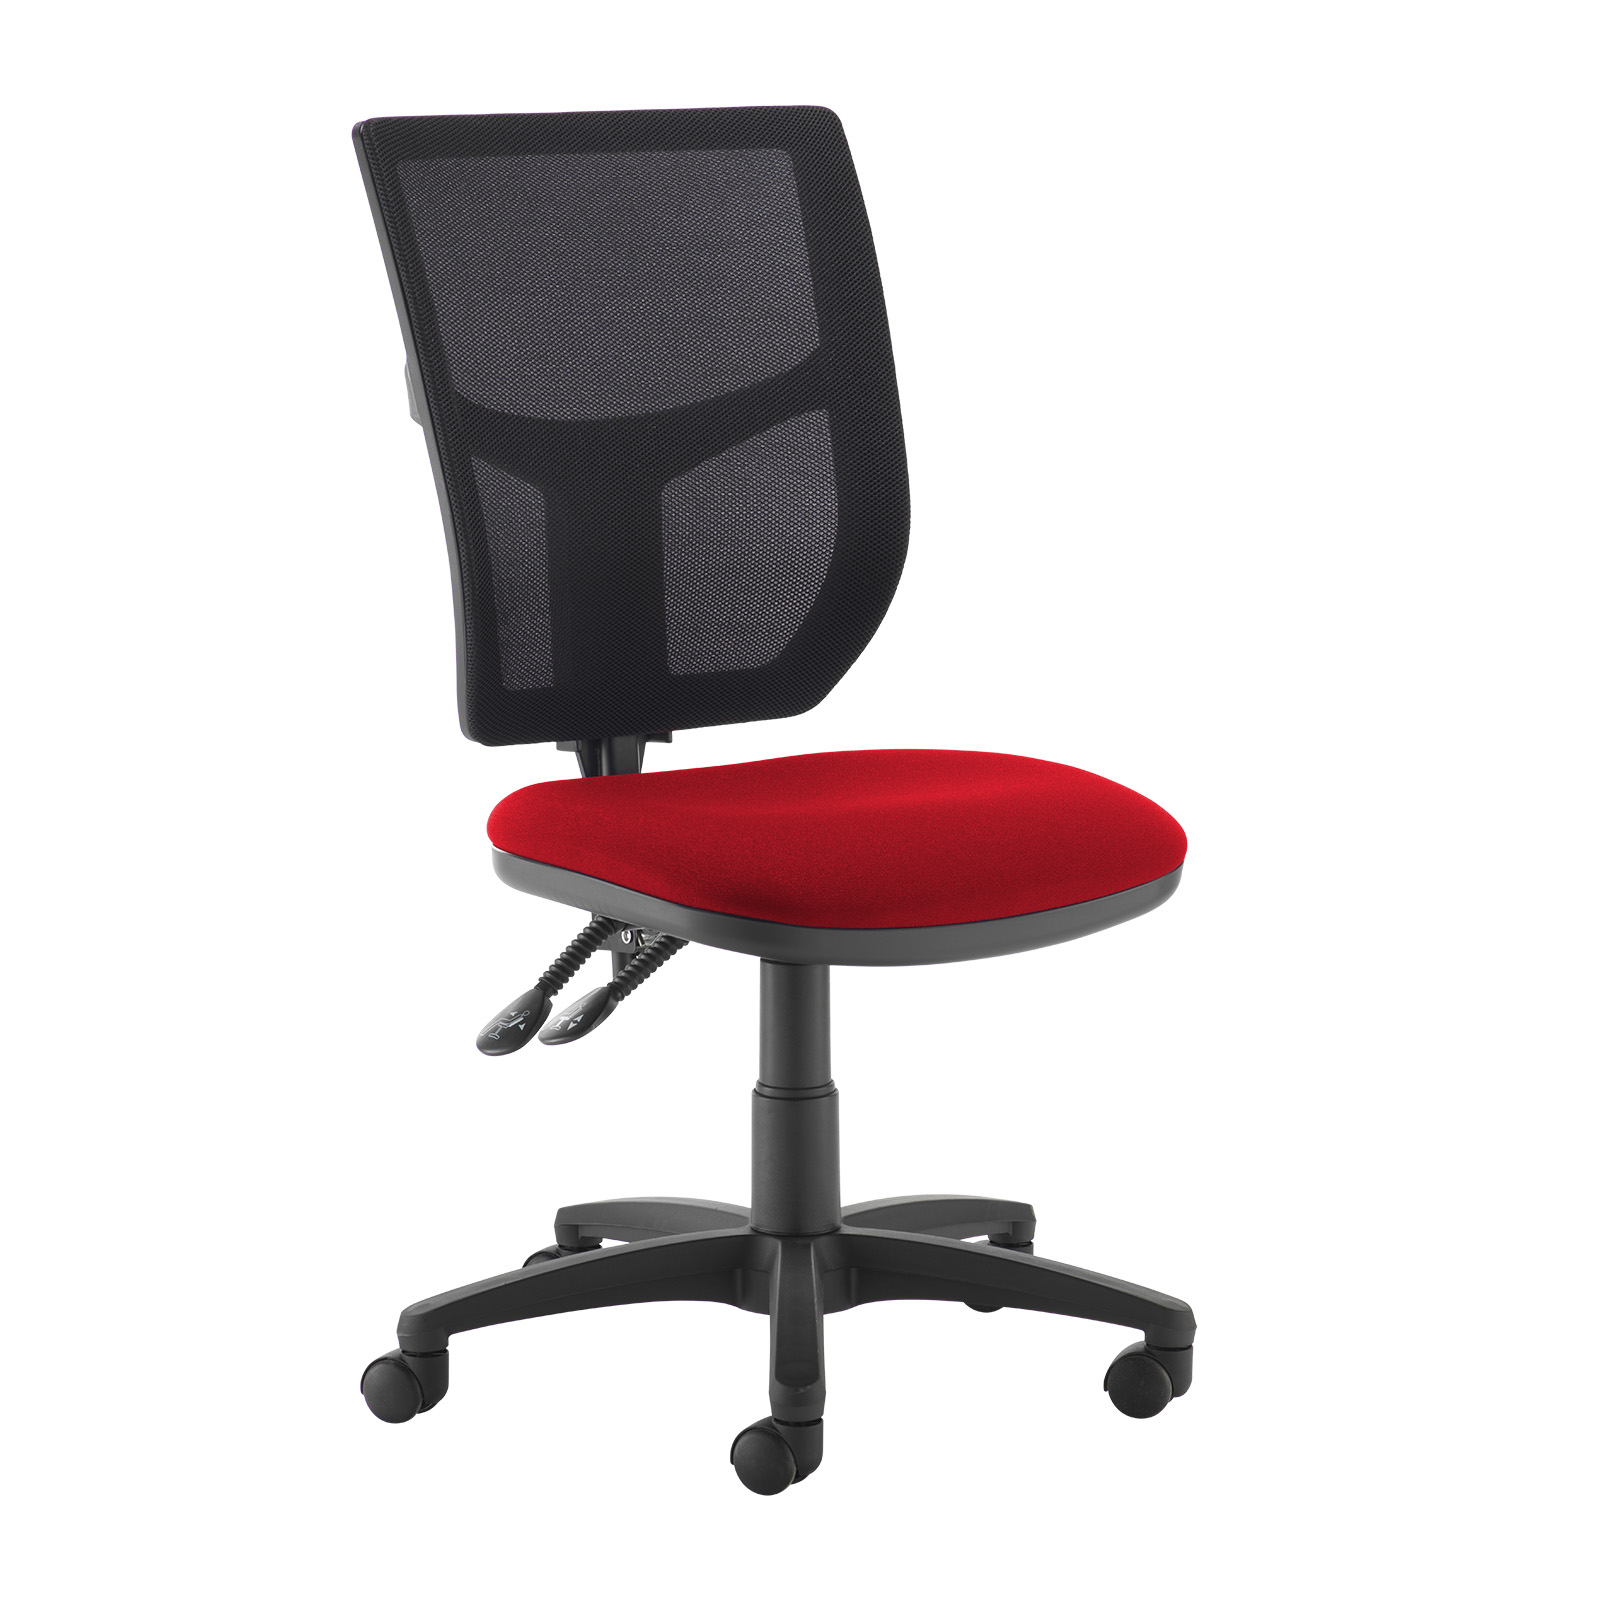 Altino 2 lever high mesh back operators chair with no arms - red